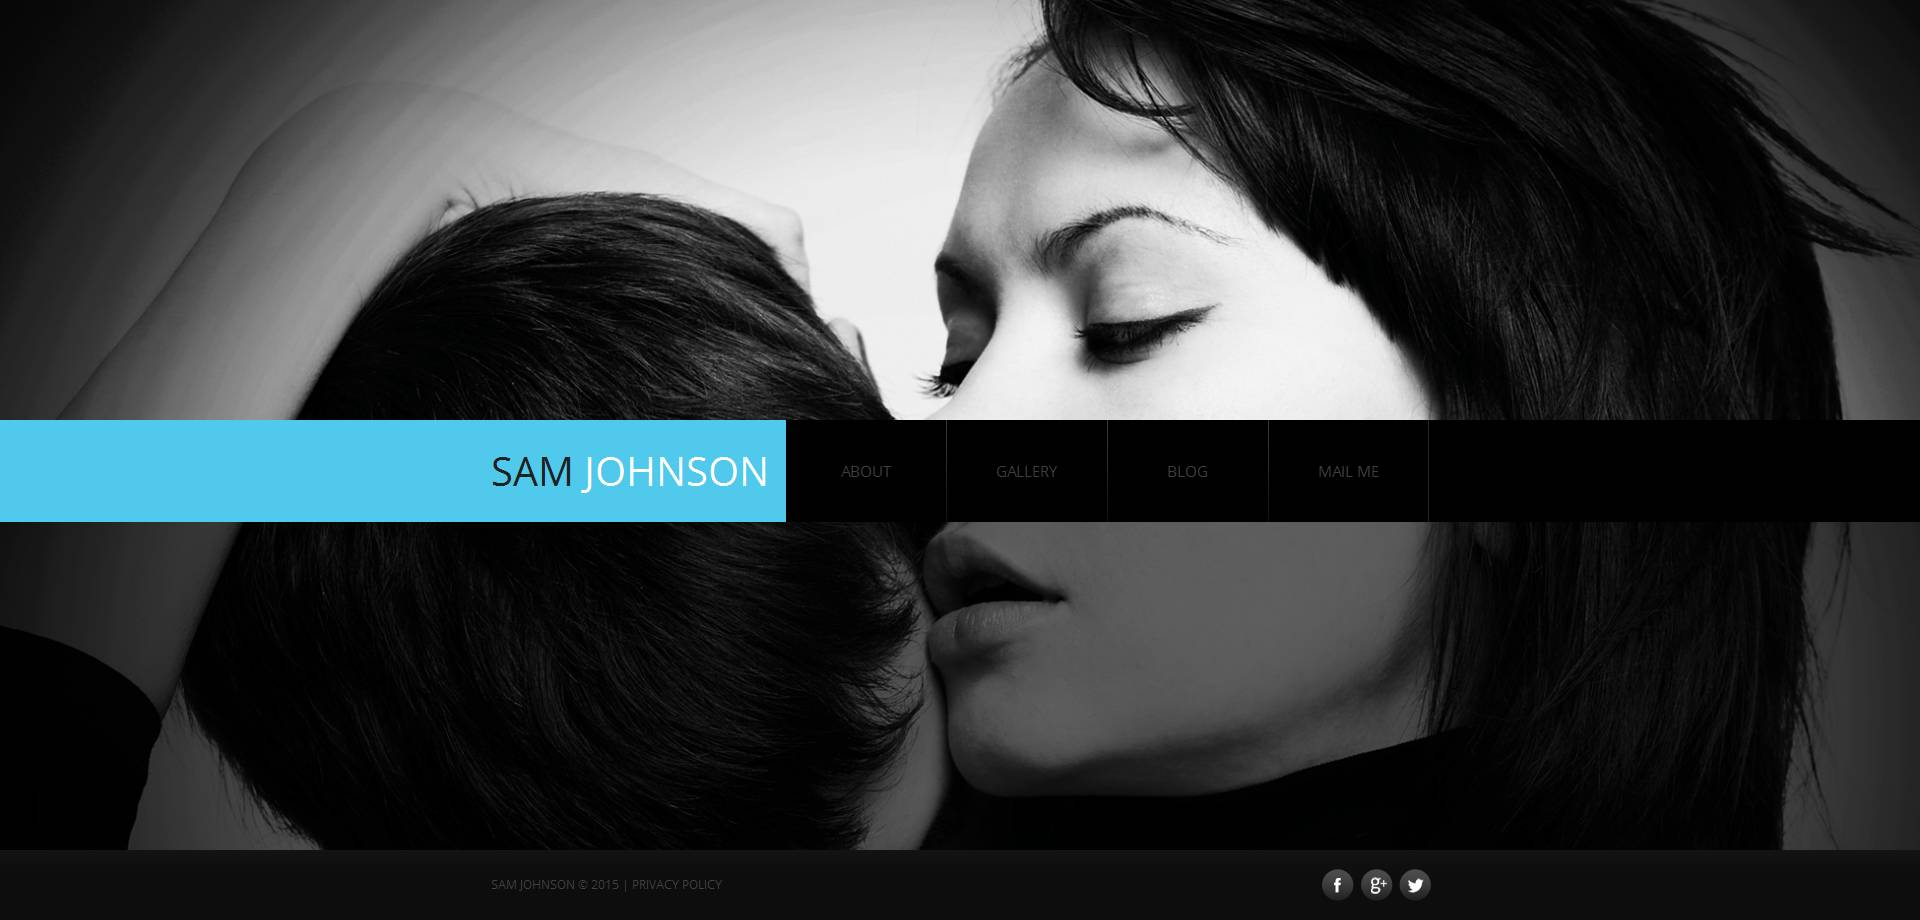 The Sam Hohnson Photographer Photo Gallery 3.0 Design 53073, one of the best Photo Gallery templates of its kind (art & photography, most popular), also known as Sam Hohnson photographer Photo Gallery template, portfolio Photo Gallery template, photography Photo Gallery template, photos Photo Gallery template, camera Photo Gallery template, pictures Photo Gallery template, art gallery Photo Gallery template, digital cameras Photo Gallery template, picture company Photo Gallery template, models and related with Sam Hohnson photographer, portfolio, photography, photos, camera, pictures, art gallery, digital cameras, picture company, models, etc.